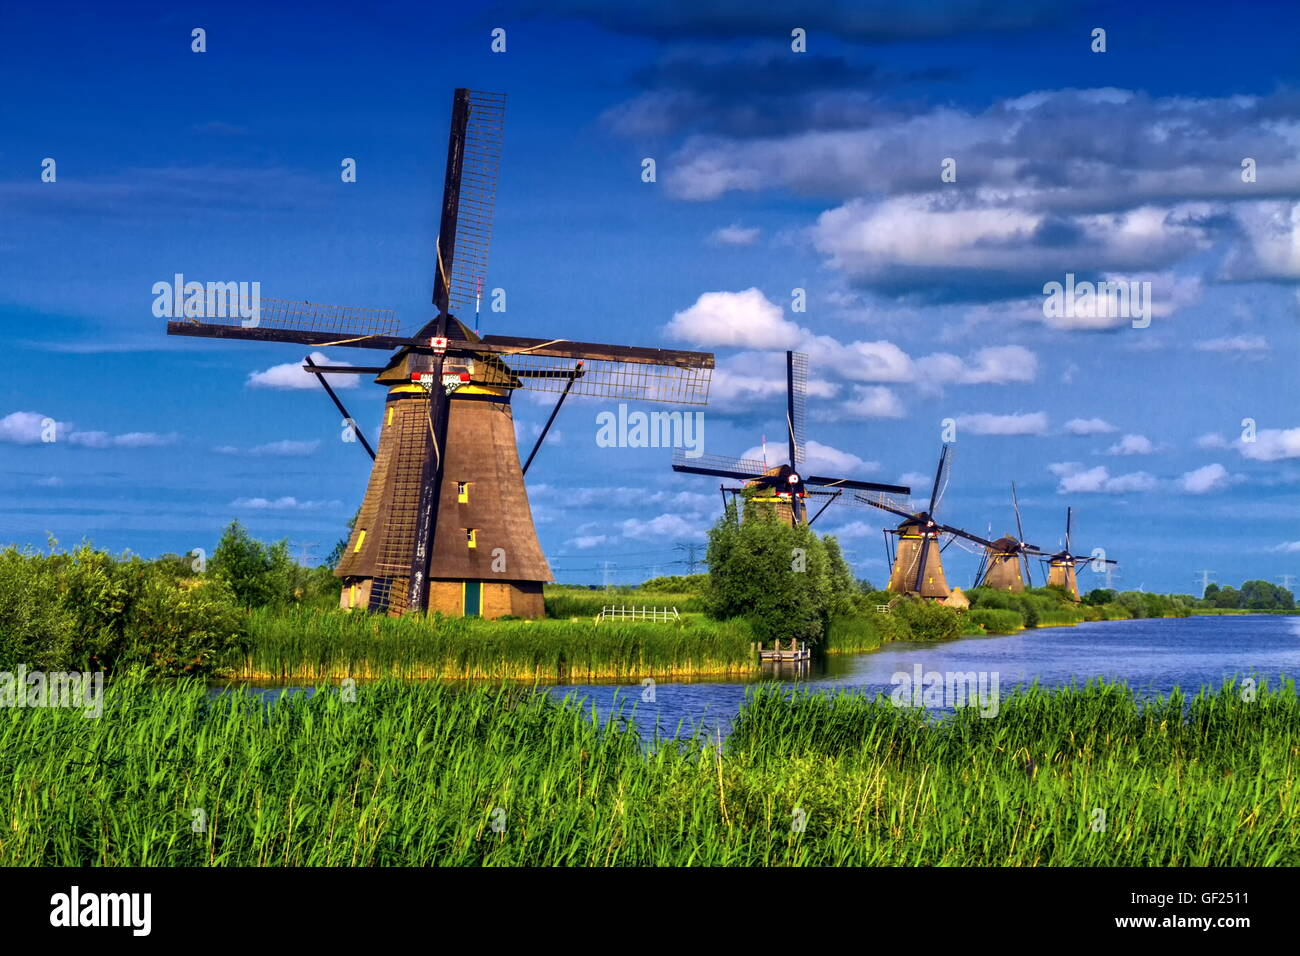 Famous historical windmills in Kinderdijk, Holland, Netherlands - Stock Image